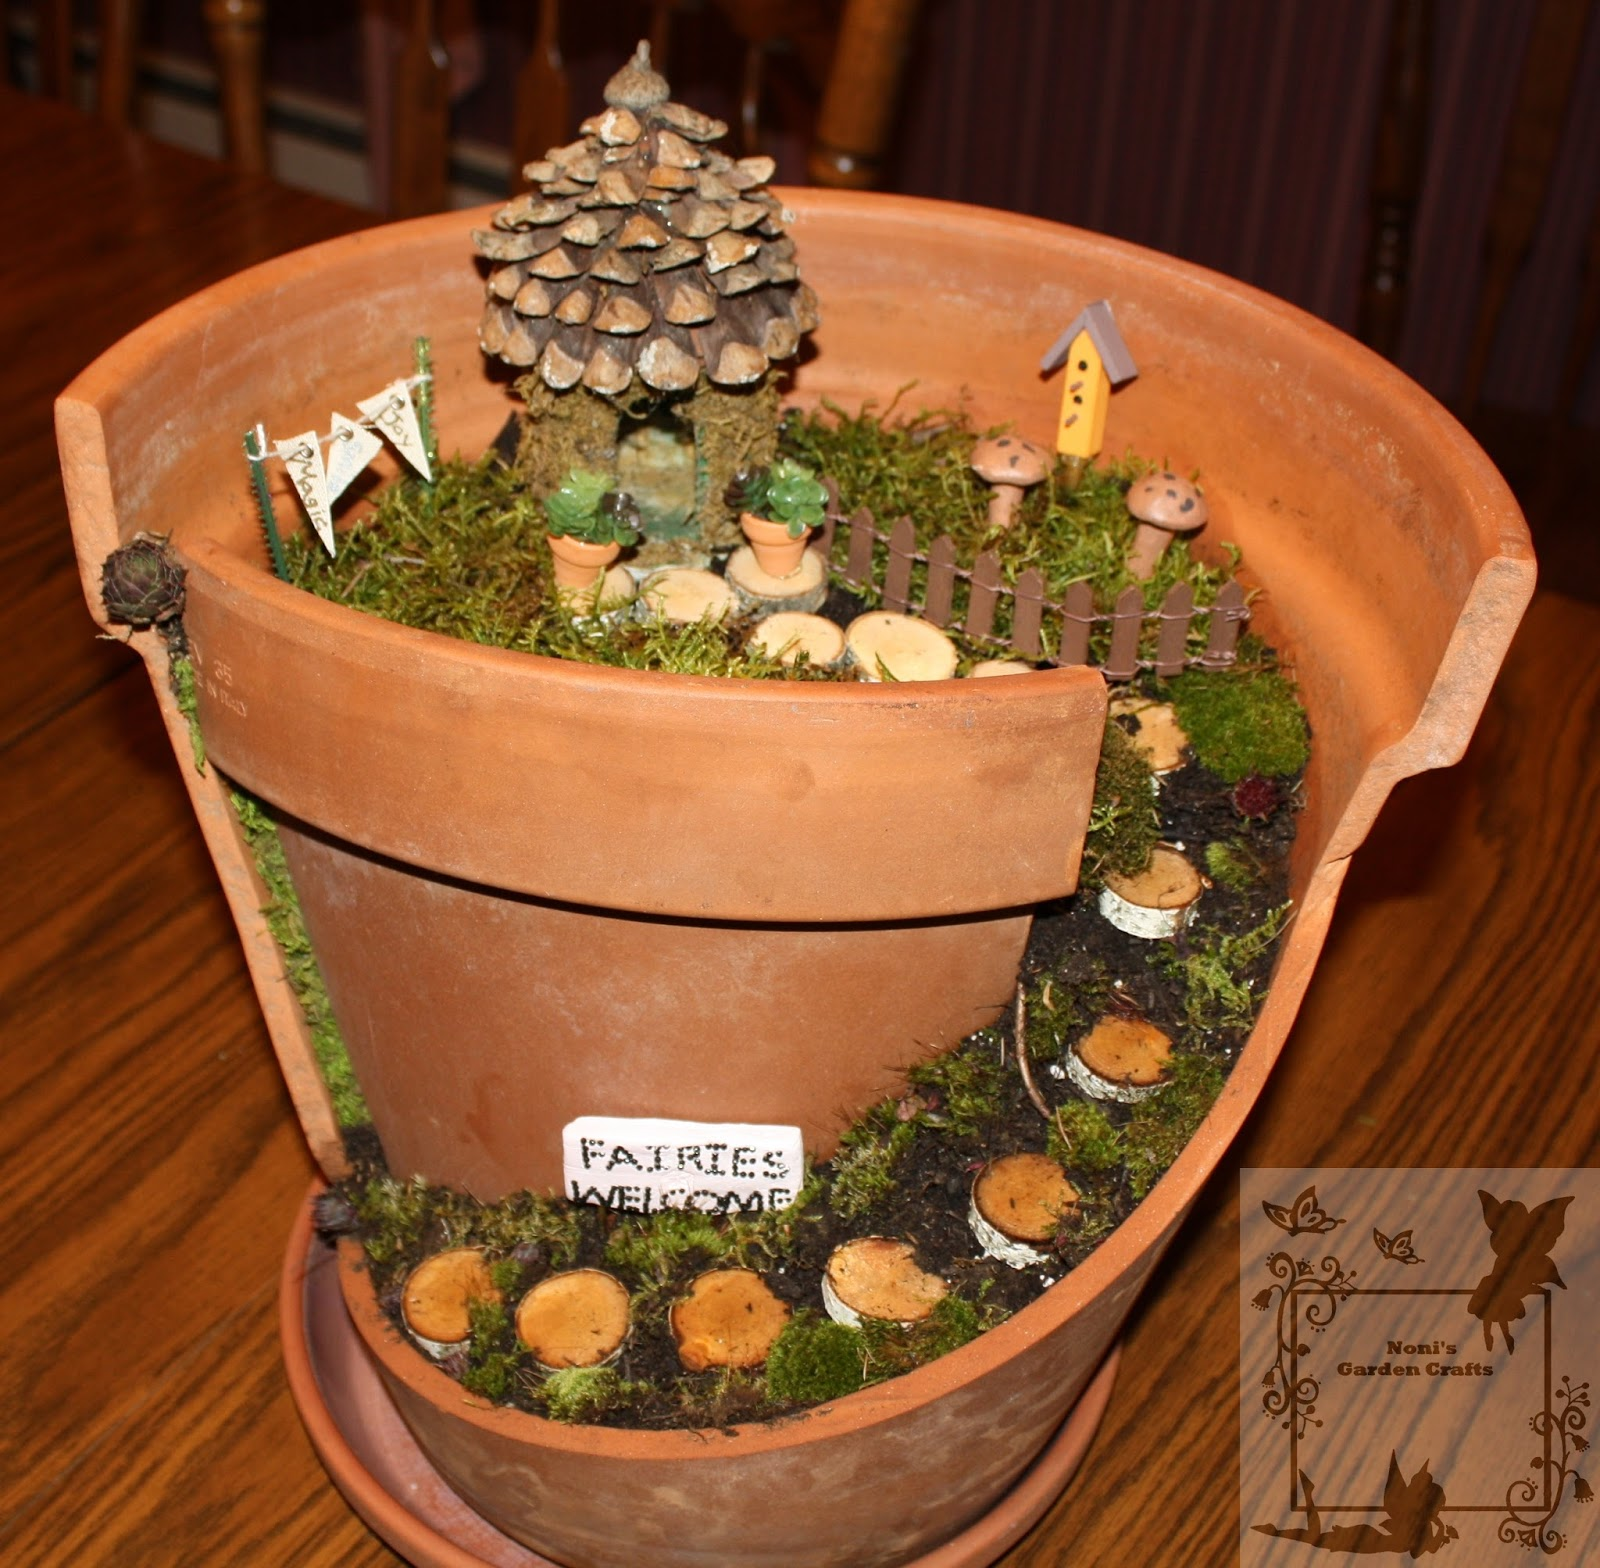 Creative and unique Fairy Garden made of Broken Flower Pot - Si Bejo